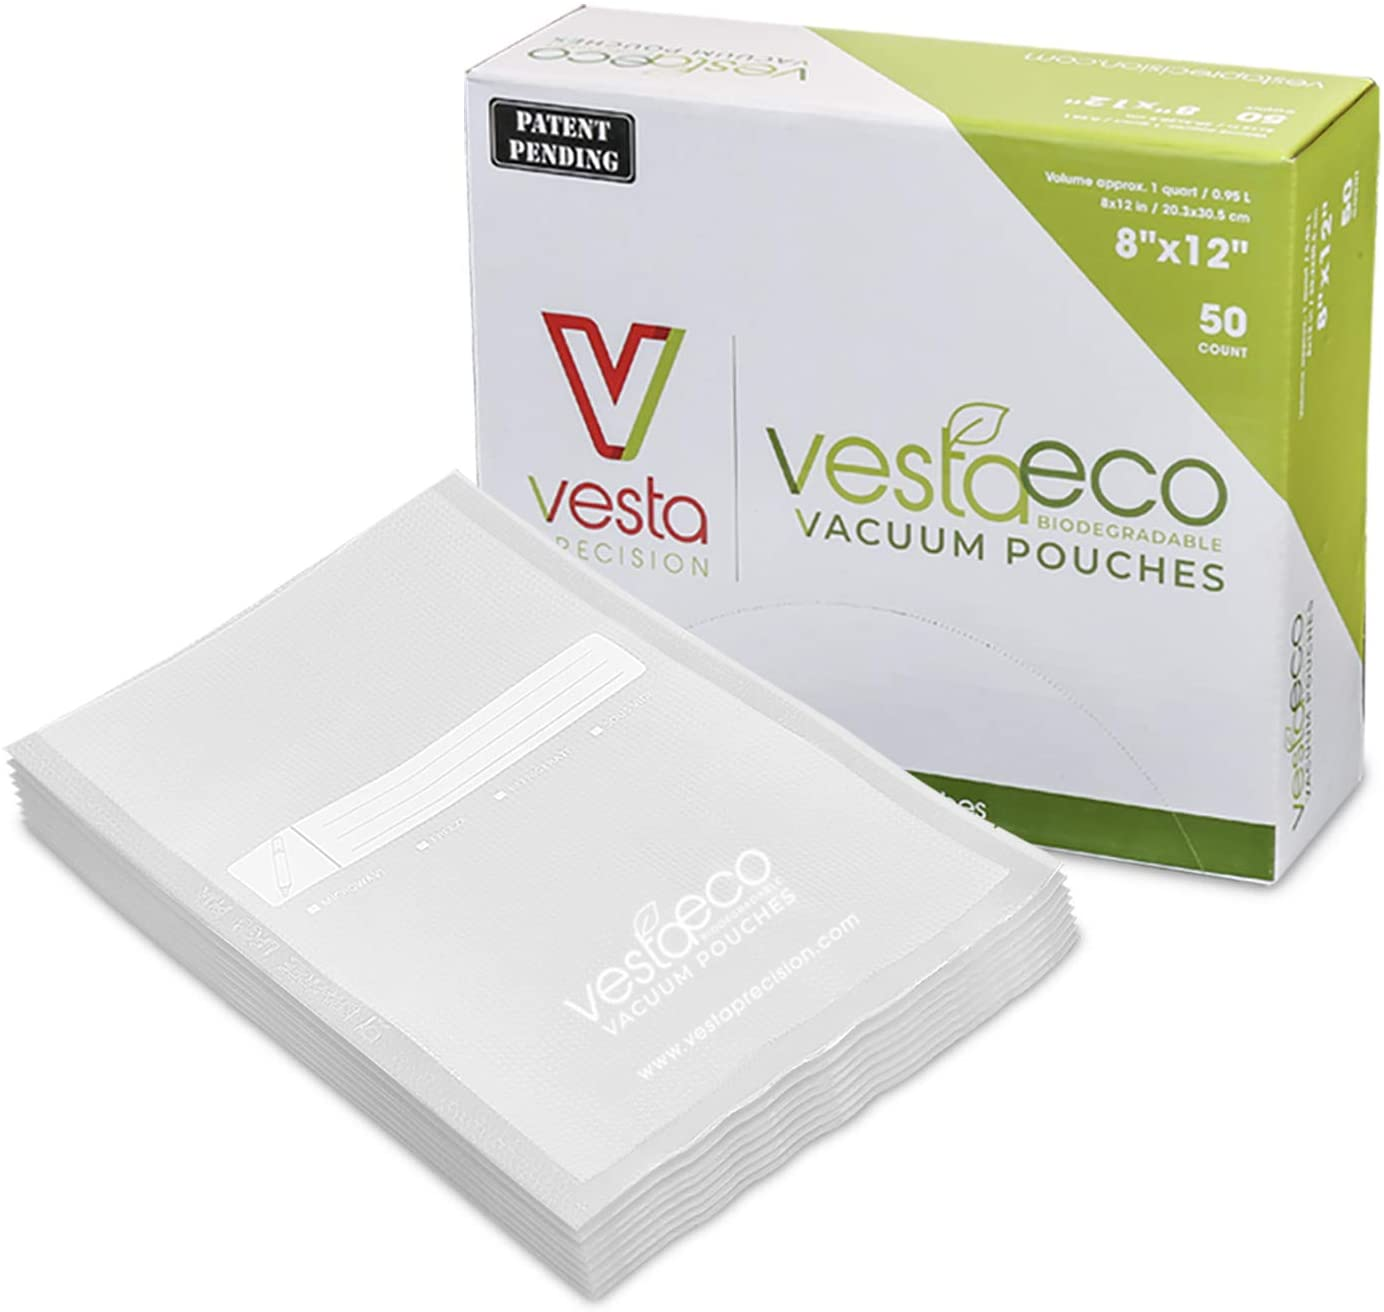 VestaEco Biodegradable Vacuum Sealer Bags | 8x12 Inch Quart 50 count | OK Compost | Certificates acquired | Patent Pending | Great for food vac storage or sous vide | sustainable environment saver |